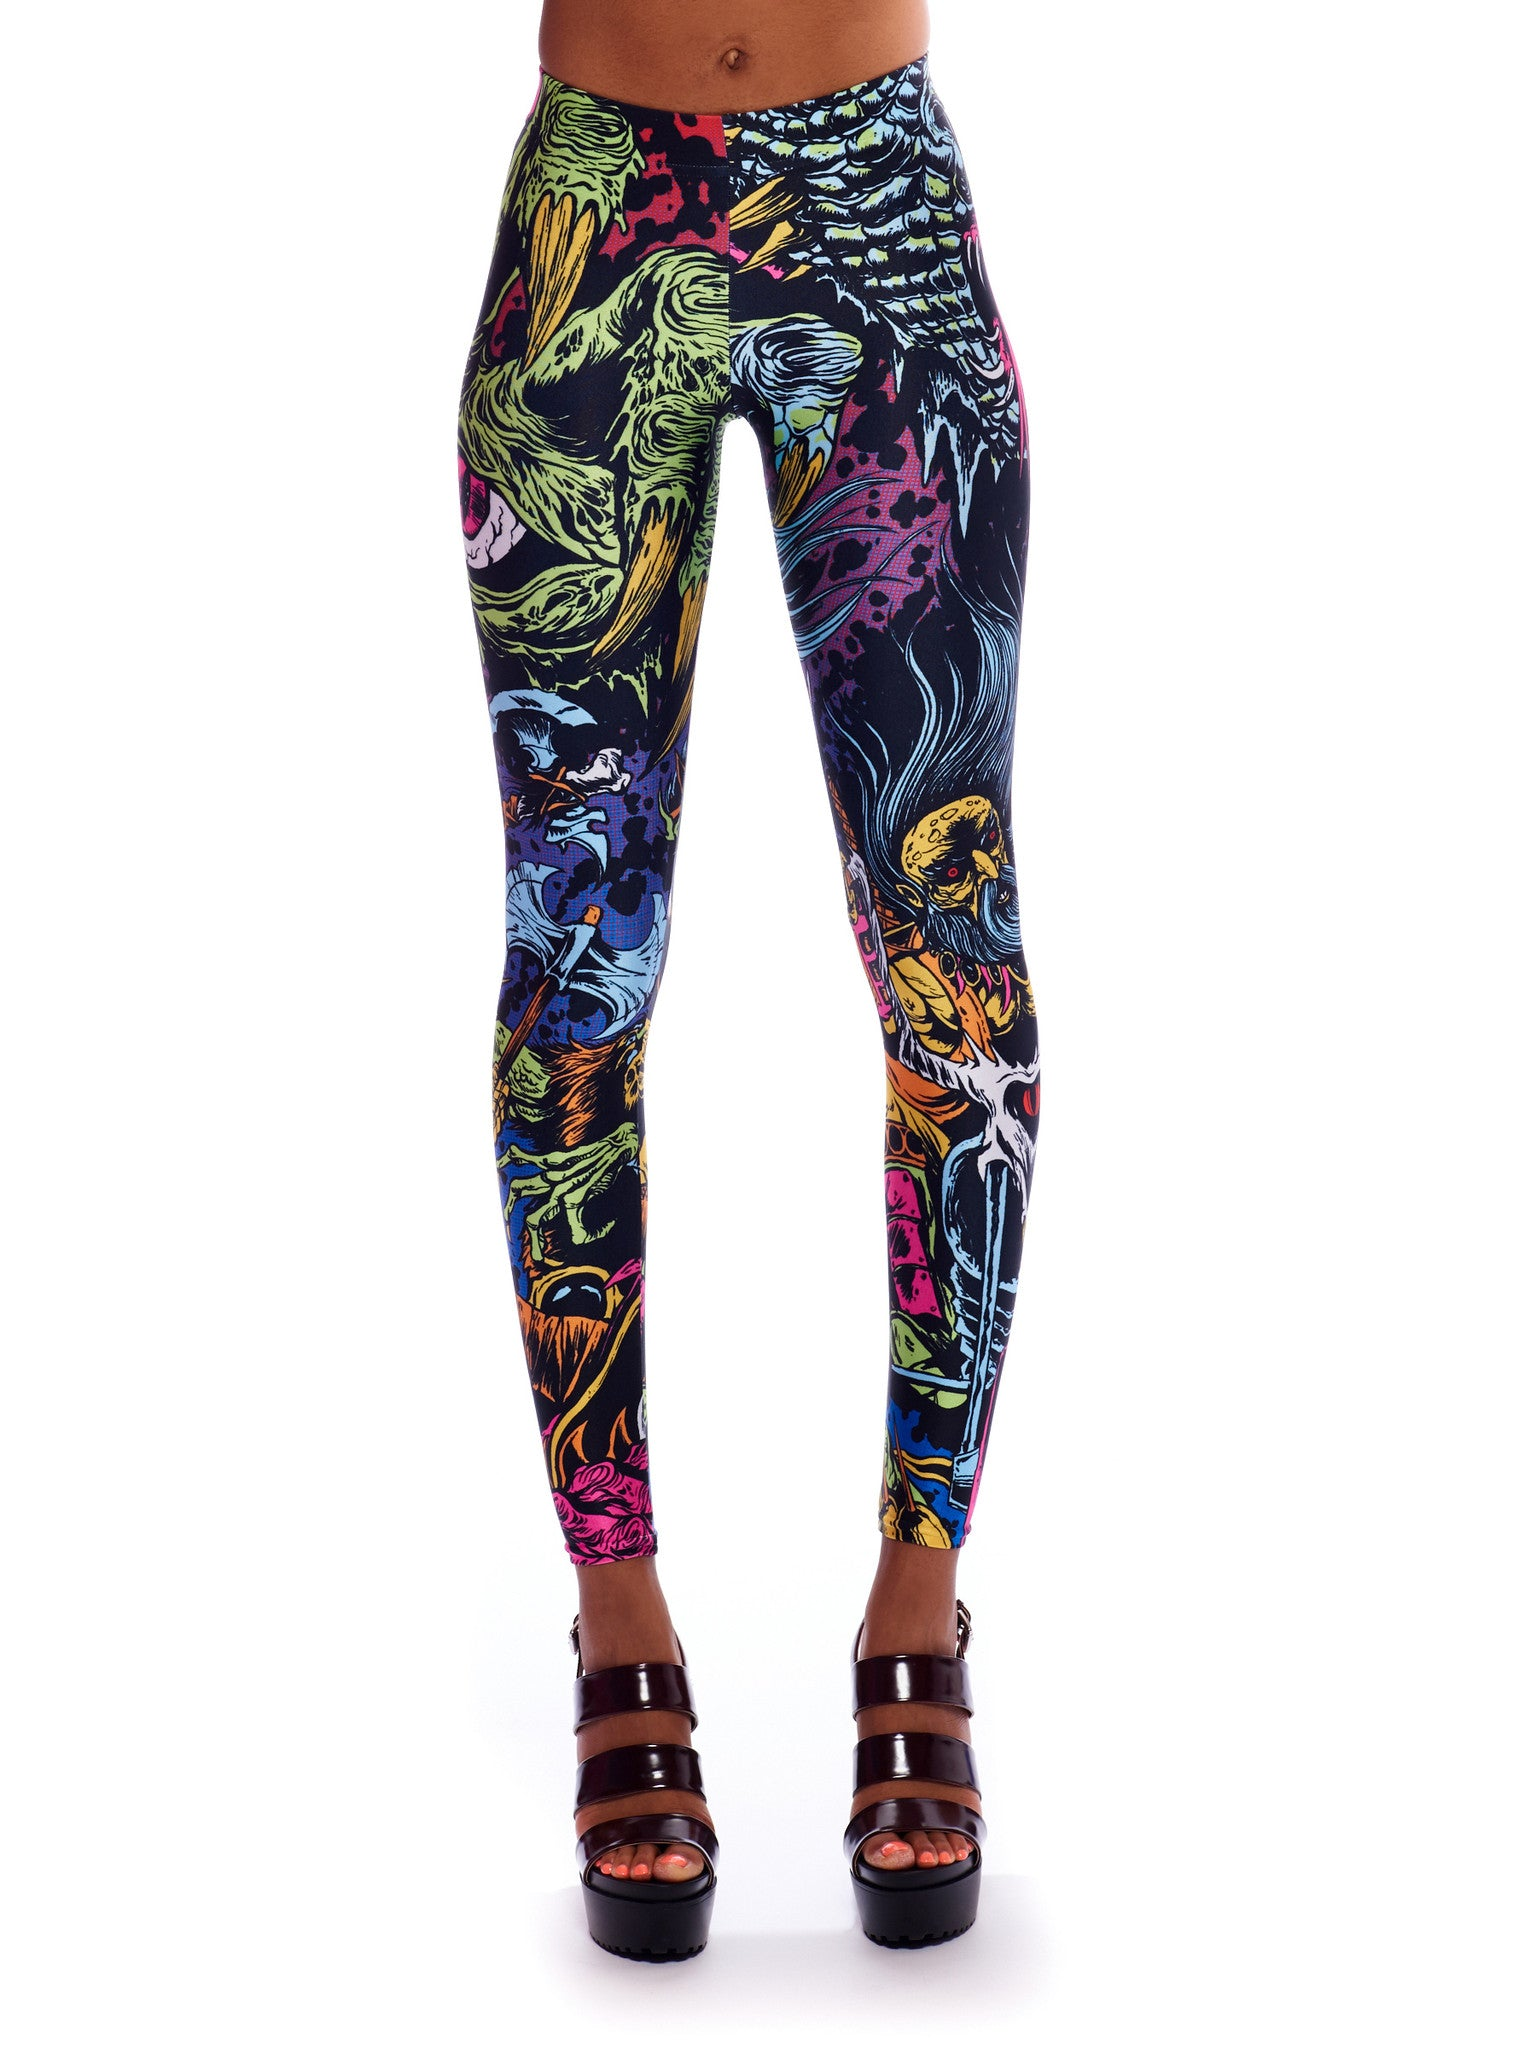 Space Biker Queen West Leggings - Nuvango Gallery & Goods - 2